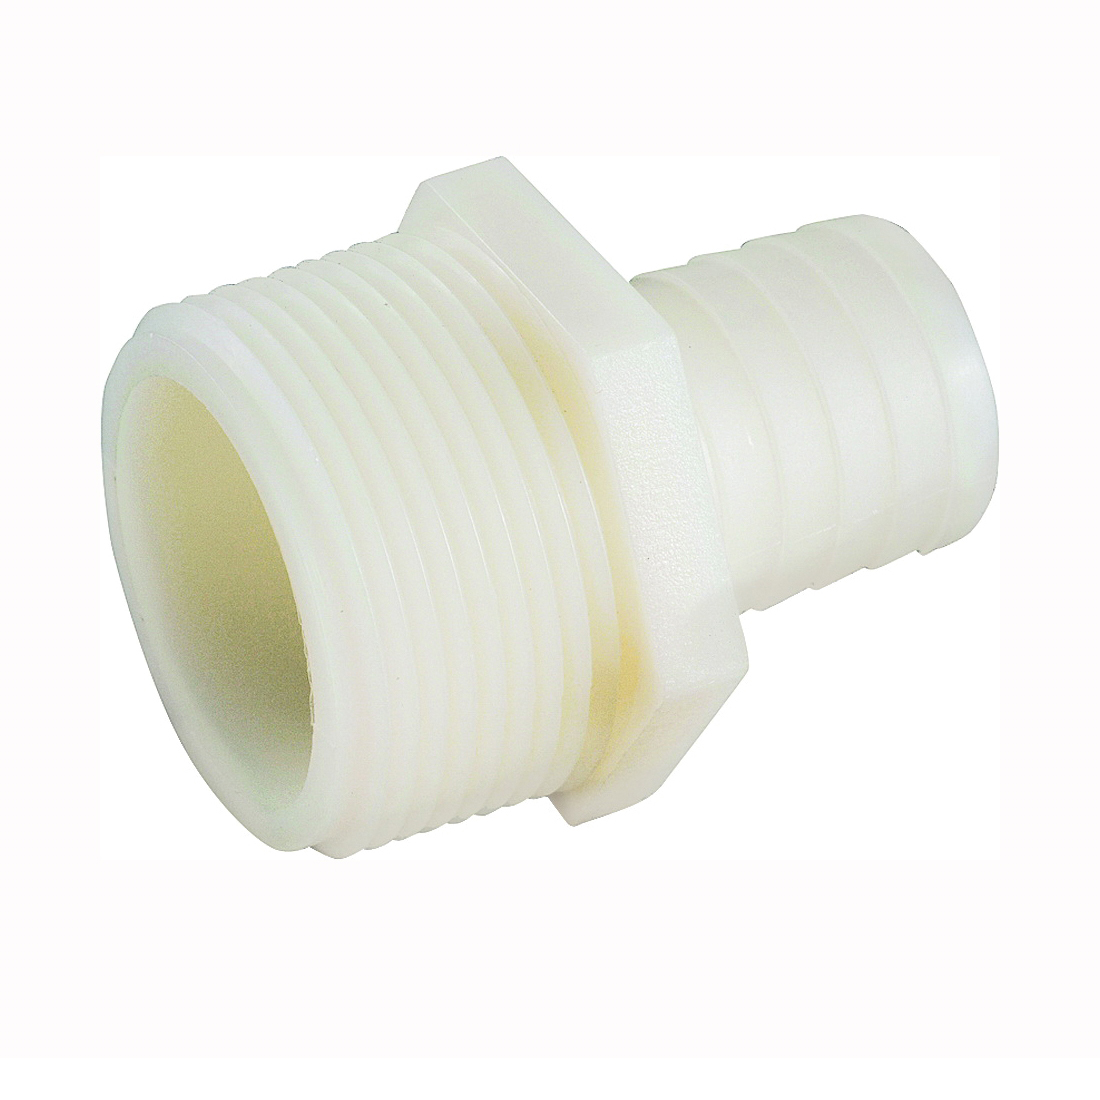 Picture of Anderson Metals 53701-0808 Hose Insert Adapter, 1/2 in, Barb, 1/2 in, MIP, 150 psi Pressure, Nylon